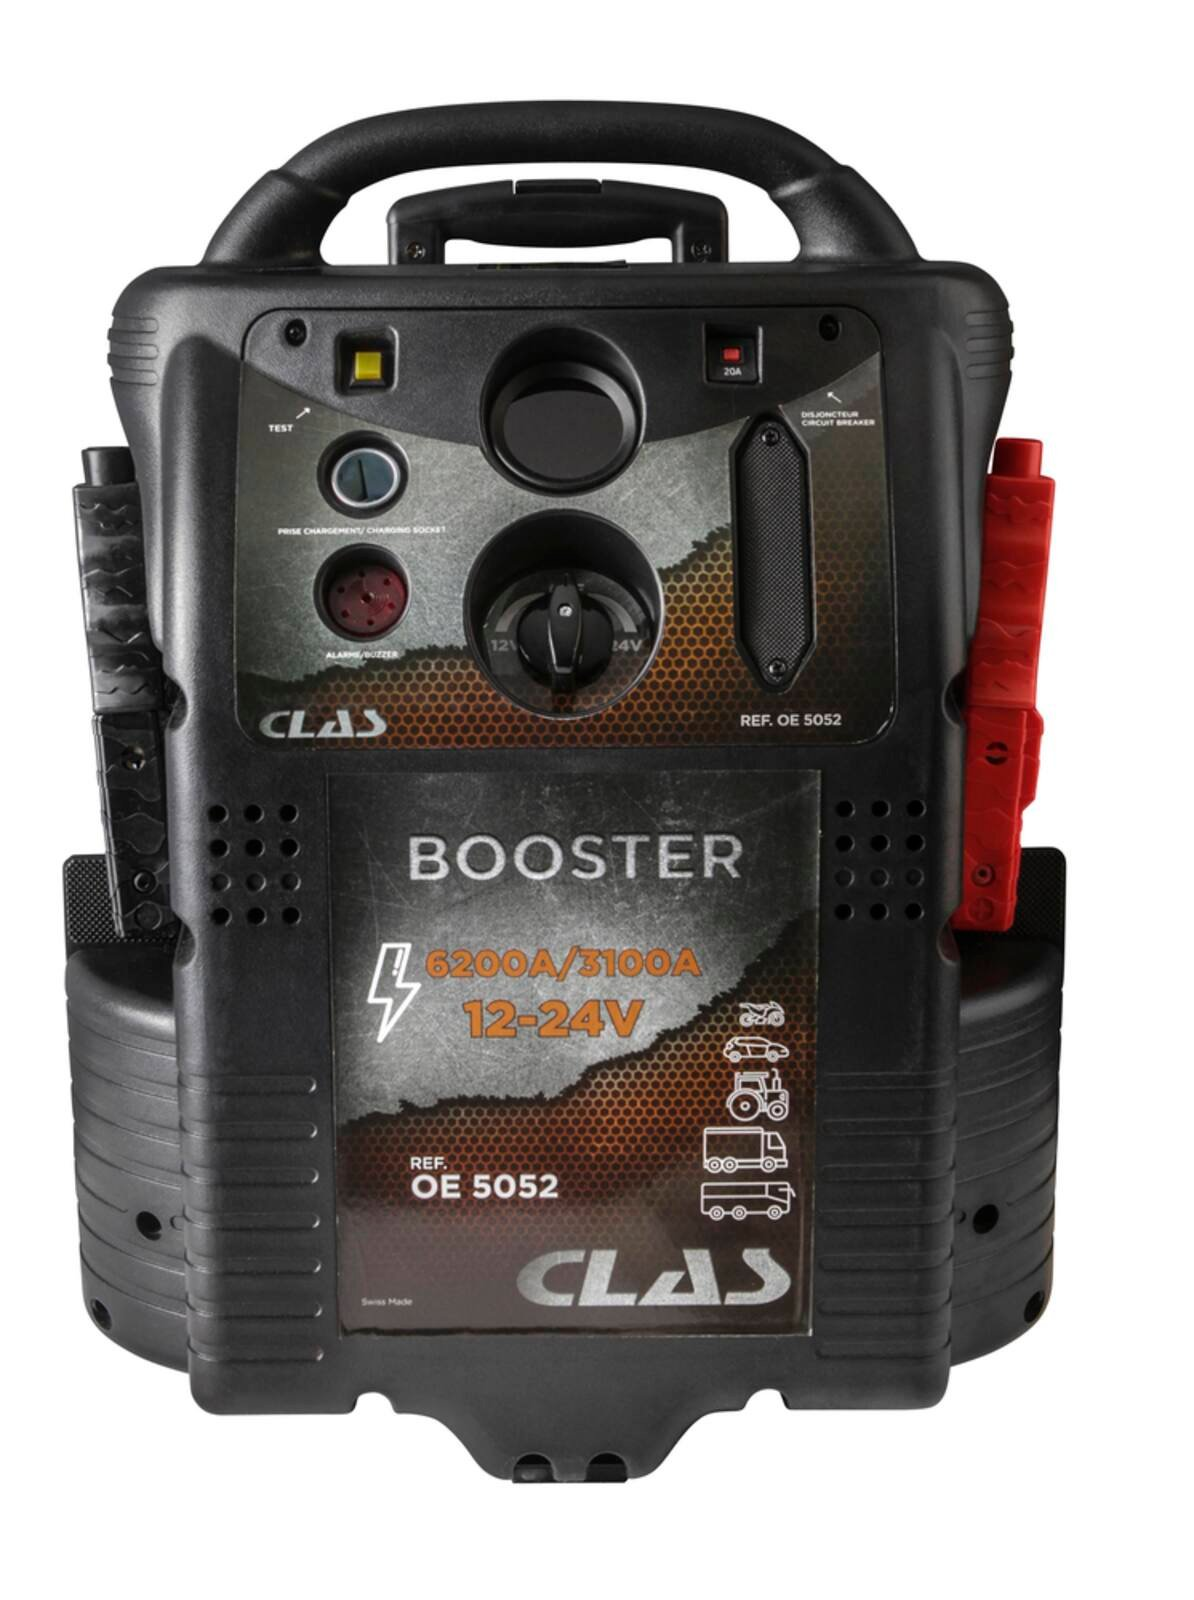 BOOSTER 12-24V 6200A/3100A